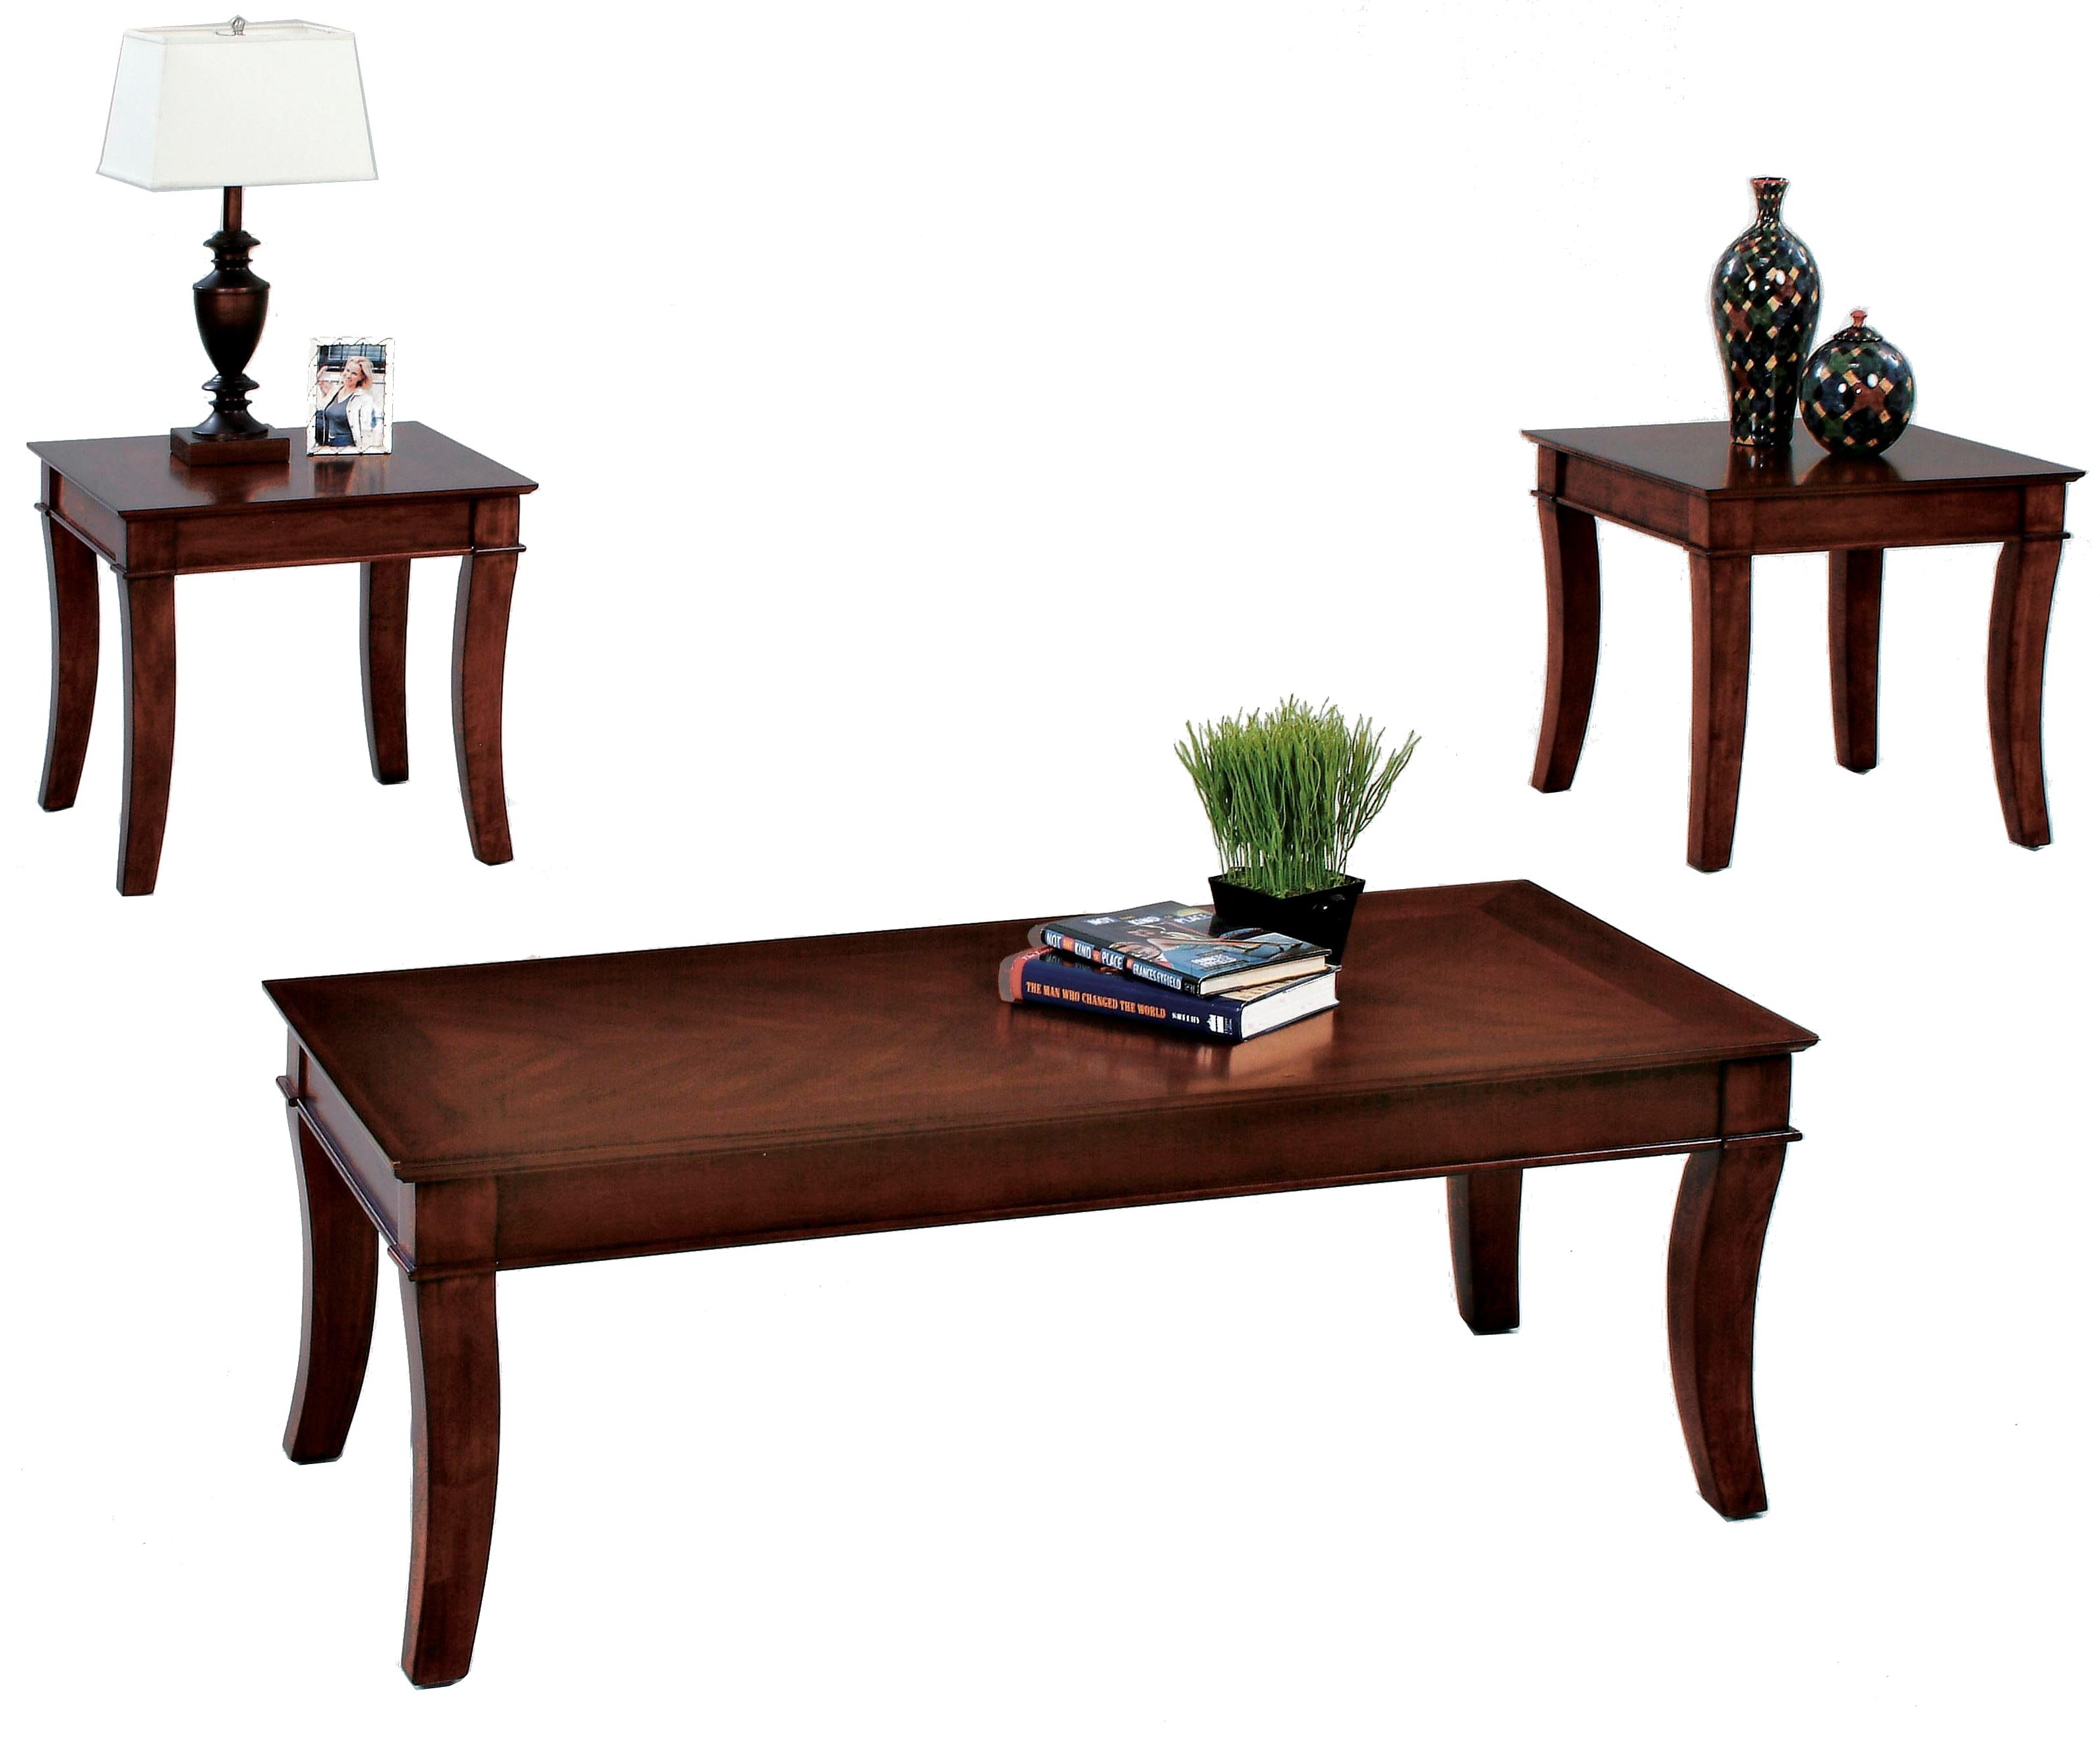 Progressive furniture corona 3 pack occasional set w for Occasional table manufacturers